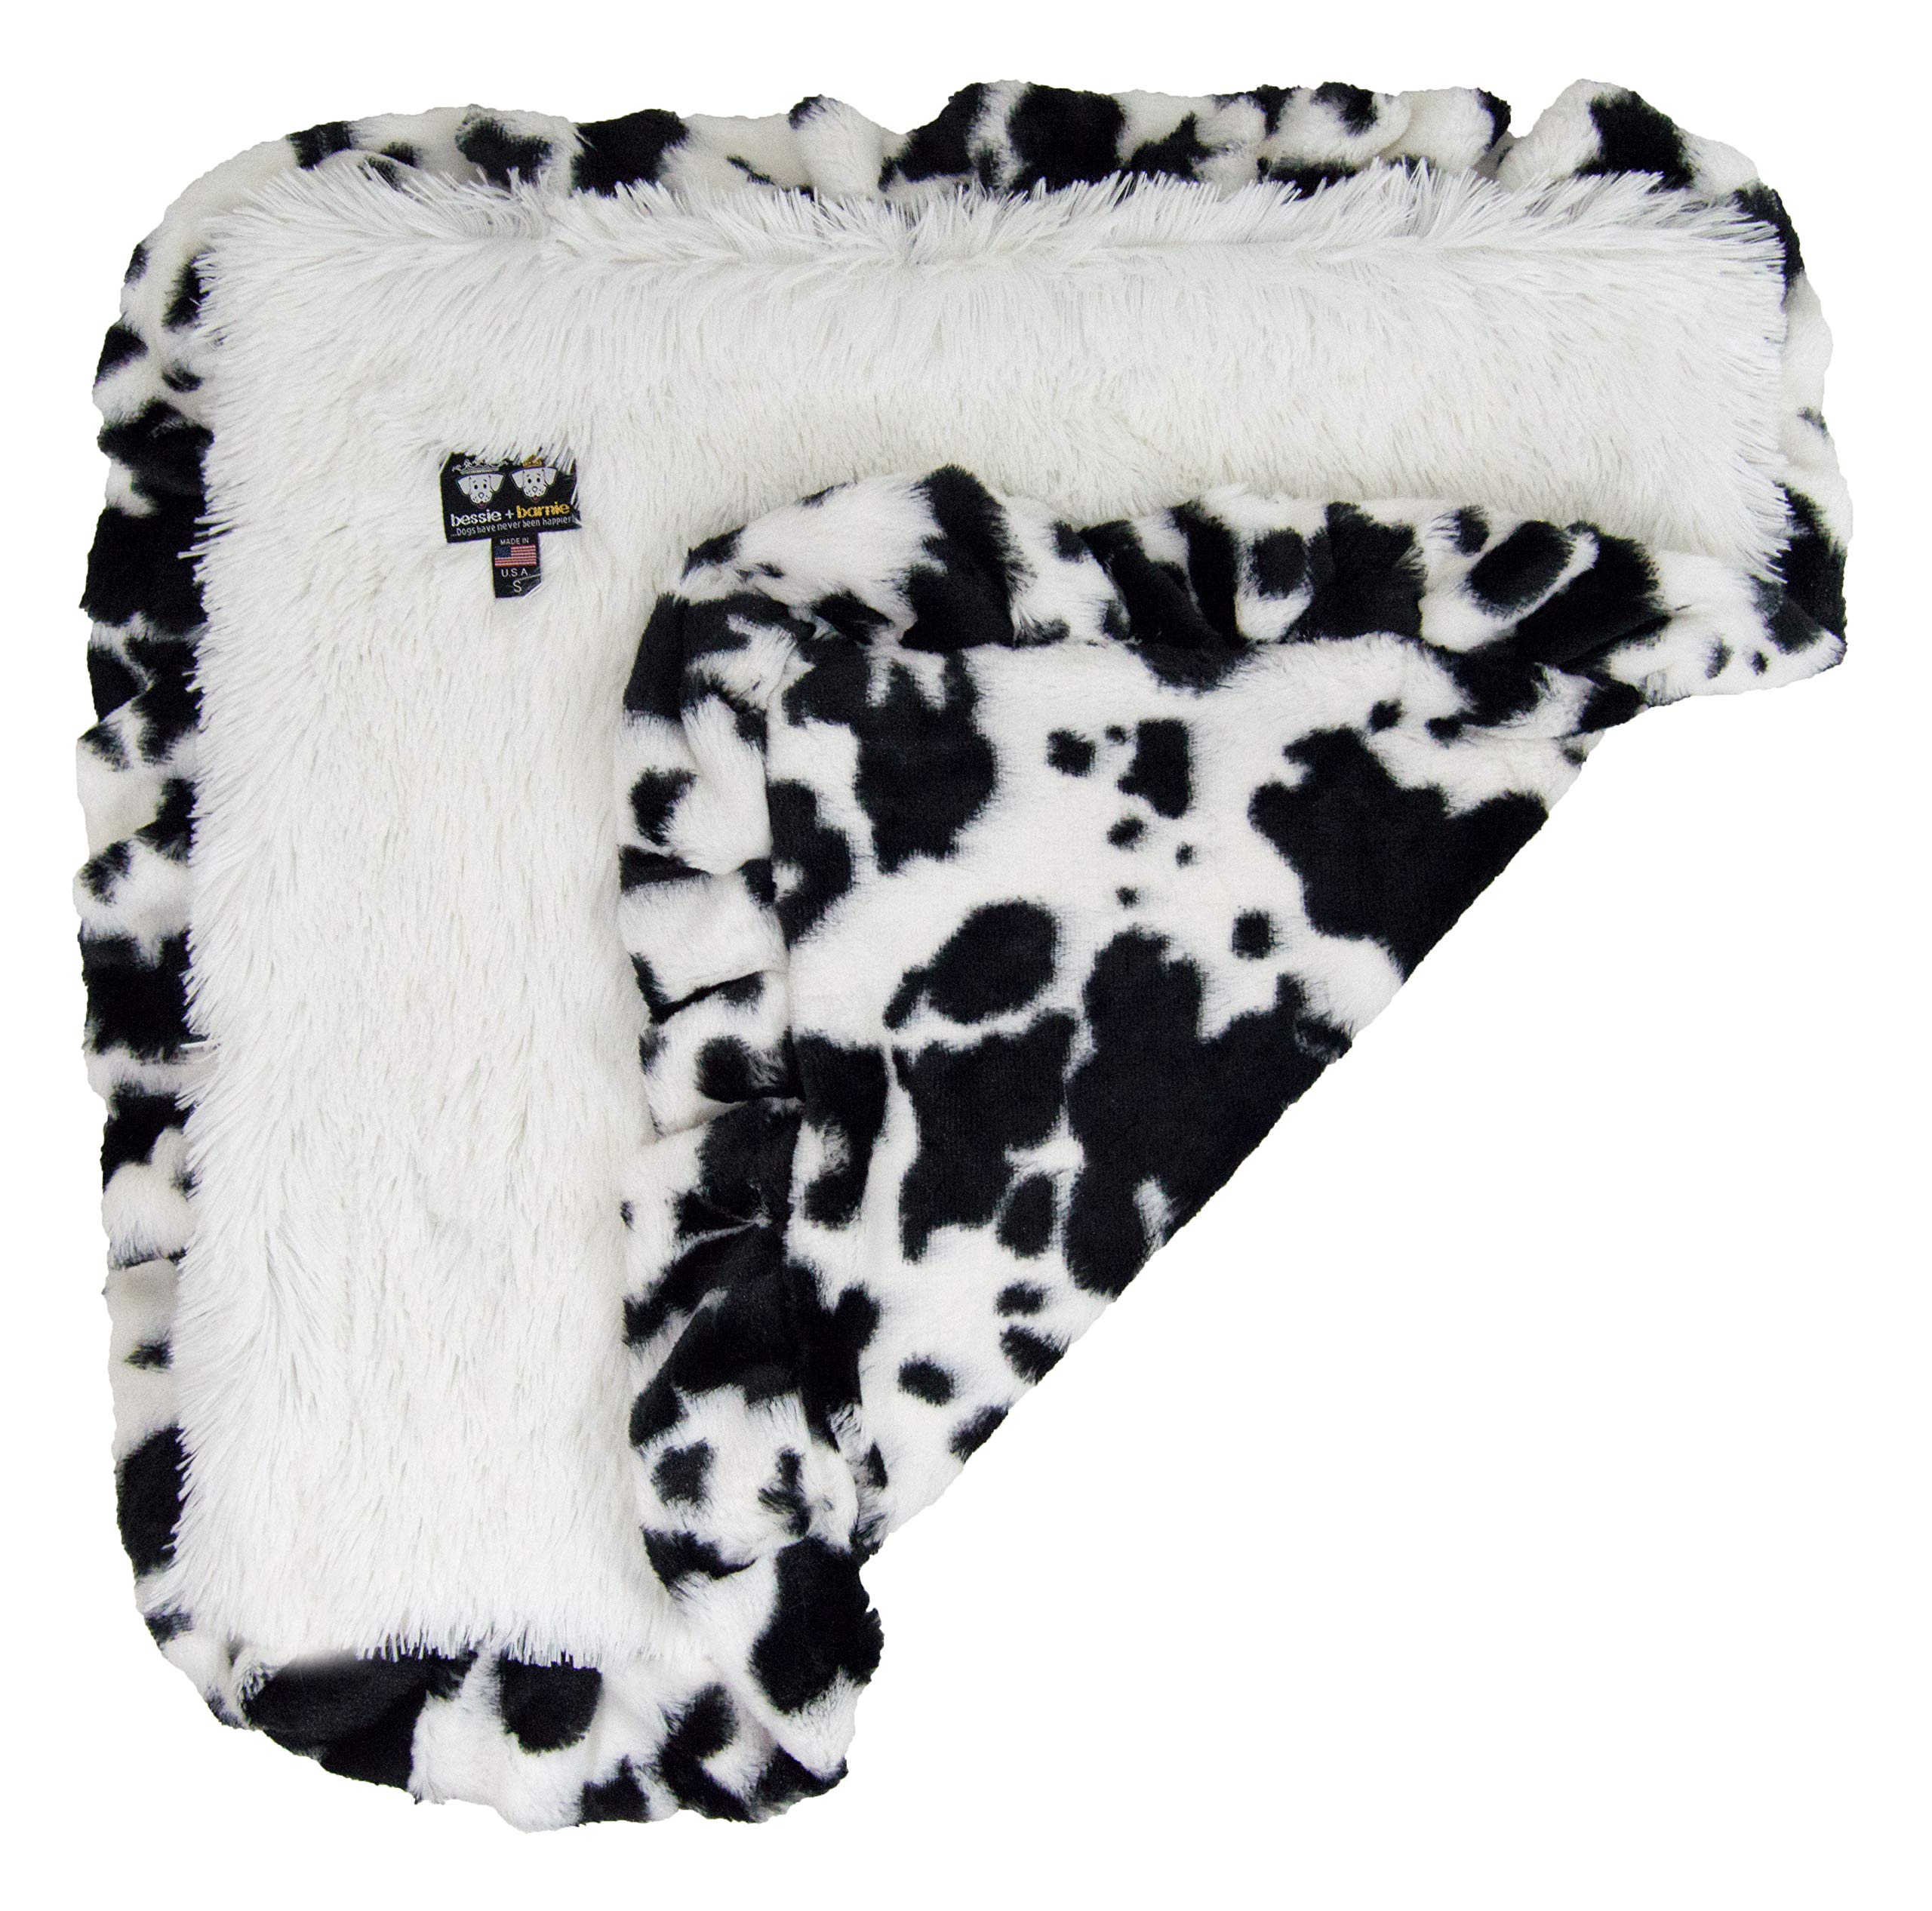 Bessie and Barnie Spotted Pony/ Snow White Luxury Shag Ultra Plush Faux Fur Pet, Dog, Cat, Puppy Super Soft Reversible Blanket (Multiple Sizes), LG - 56'' x 36'' by Bessie and Barnie